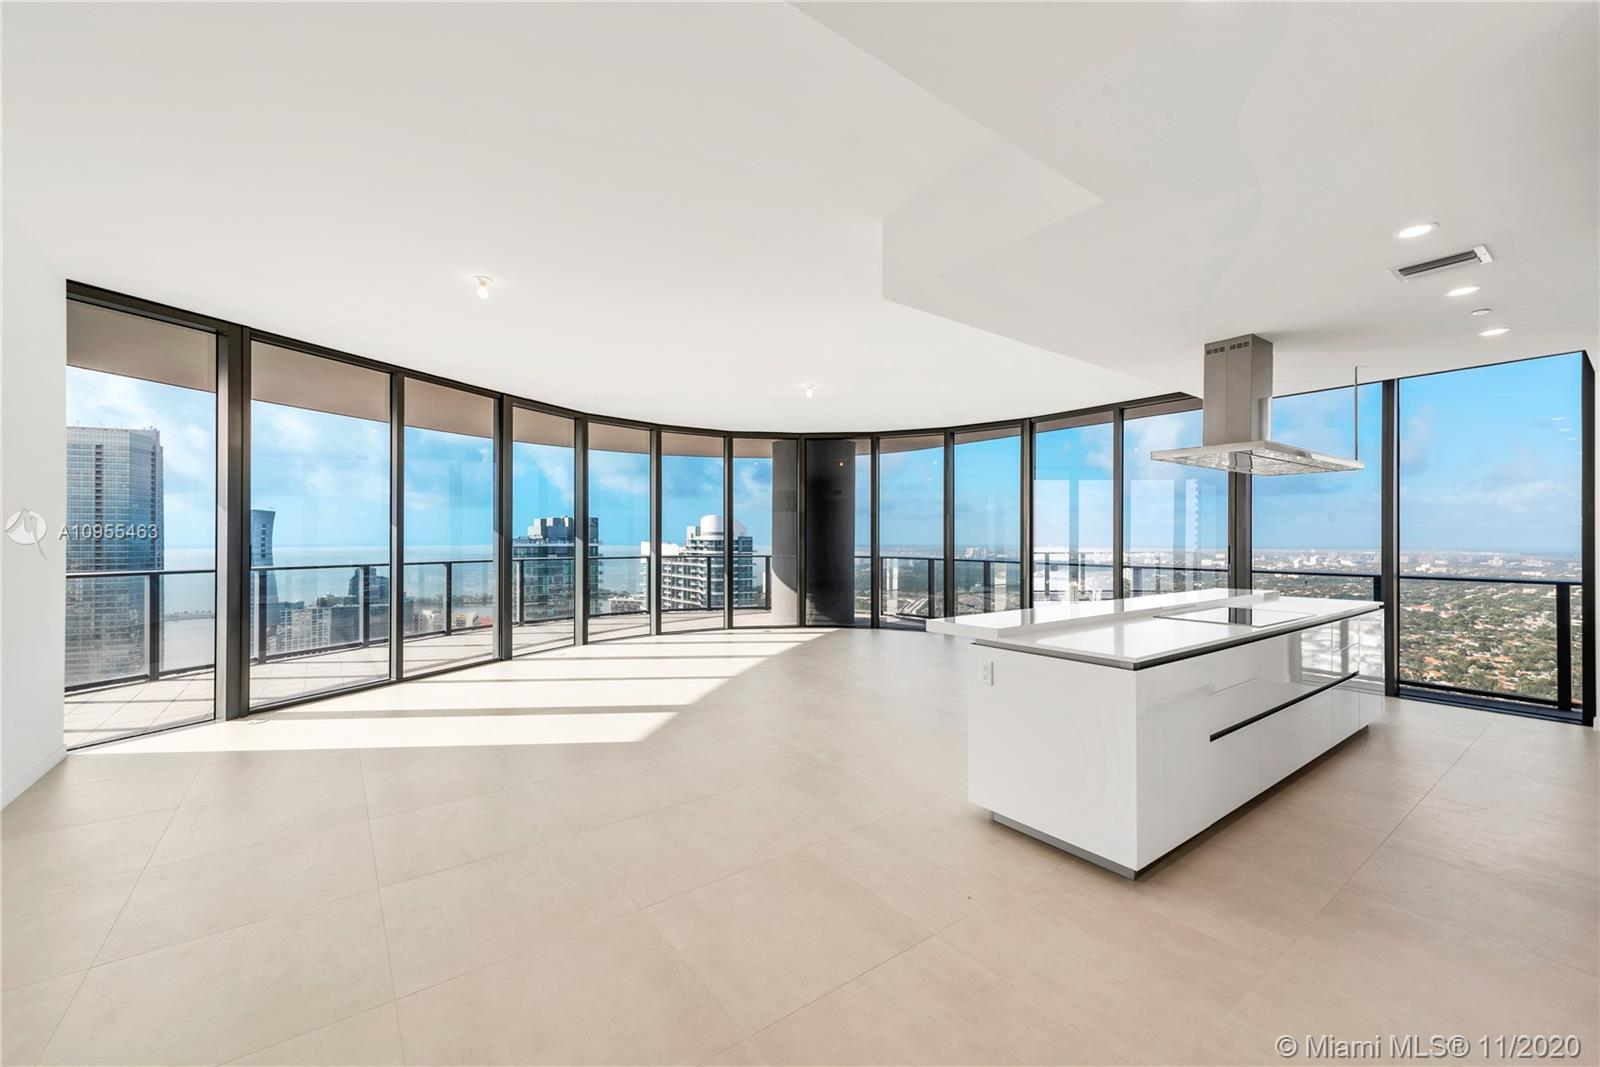 BRICKELL FLATIRON UNIT PH5702 PHOTO